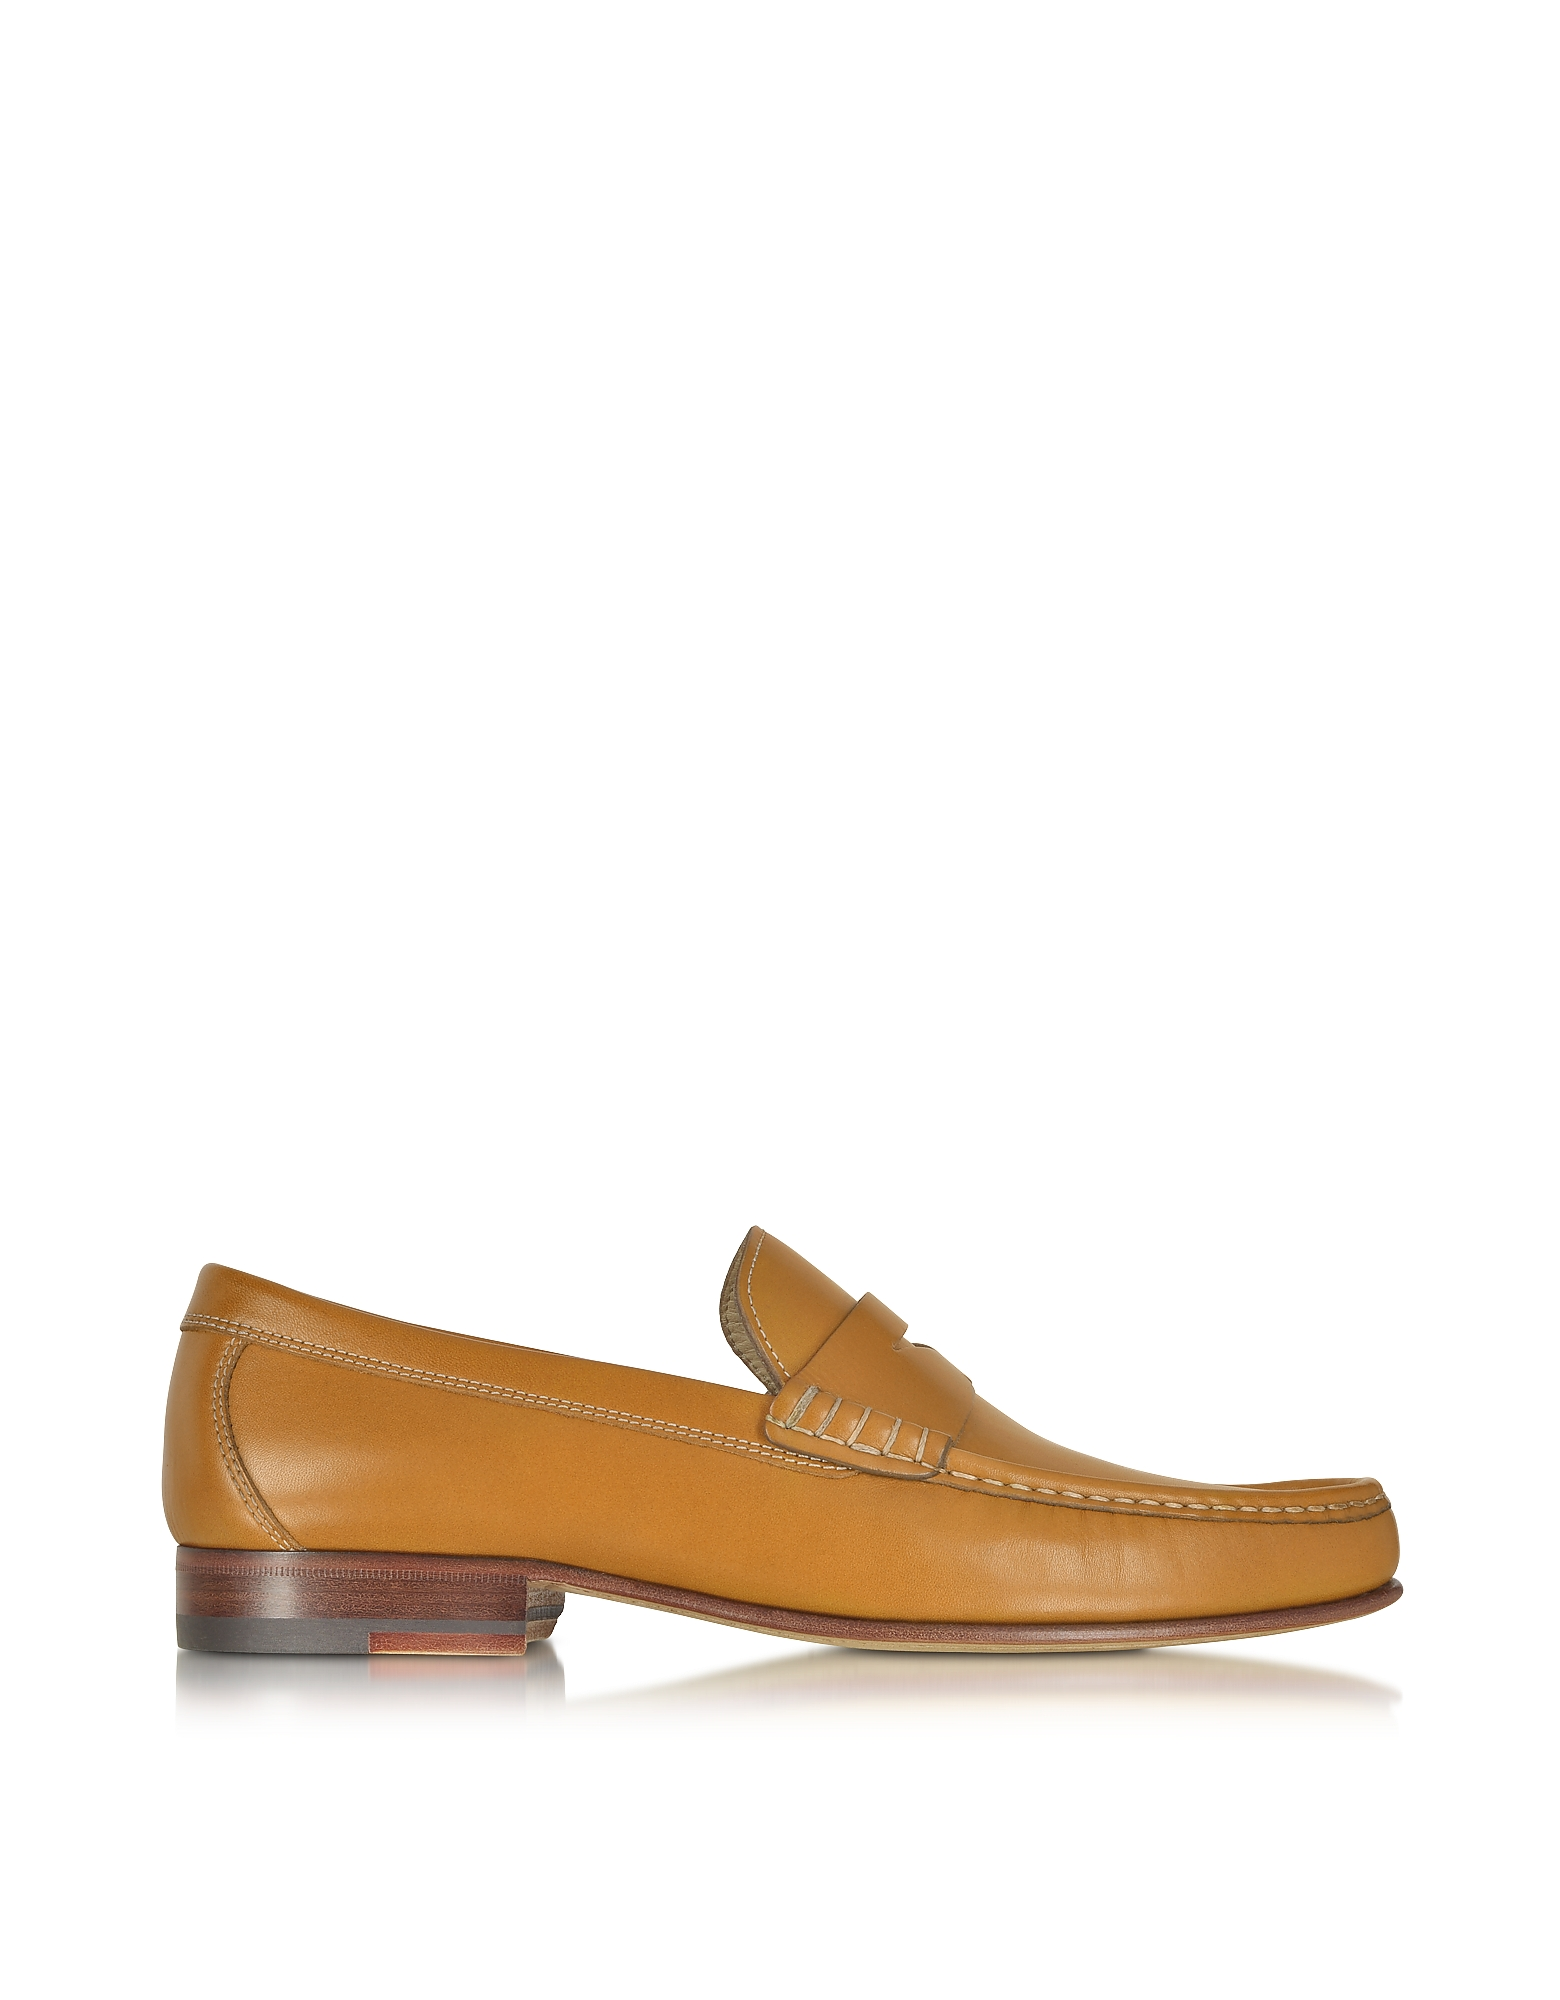 A.Testoni Shoes, Cuoio Leather Moccasin Shoe